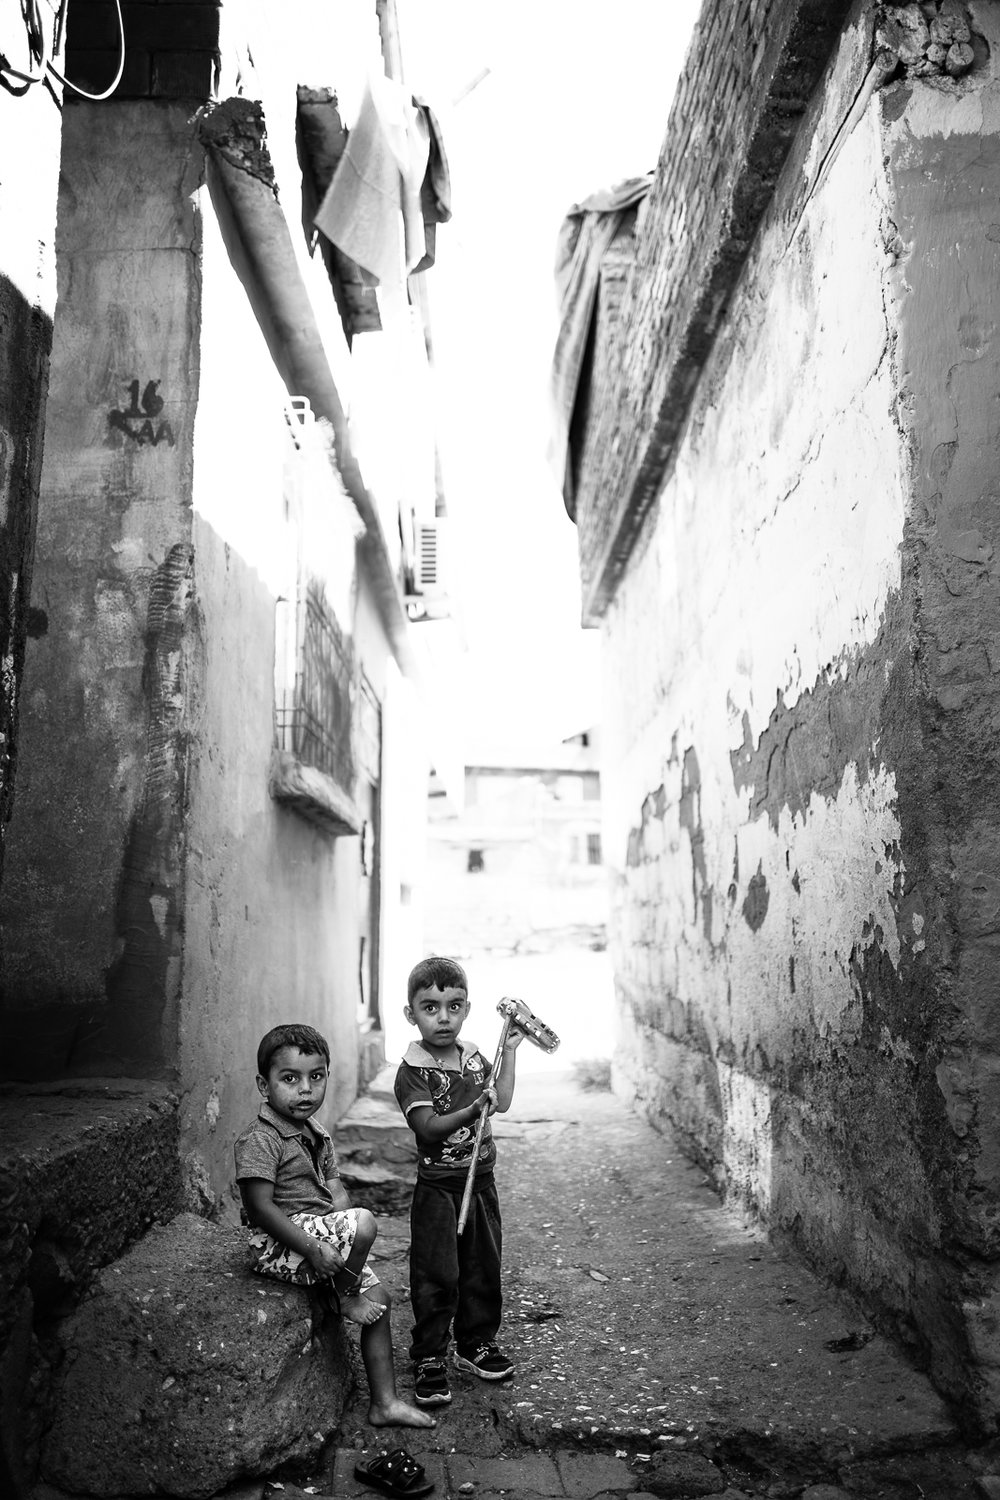 Children are playing in Diyarbakir's alleys,